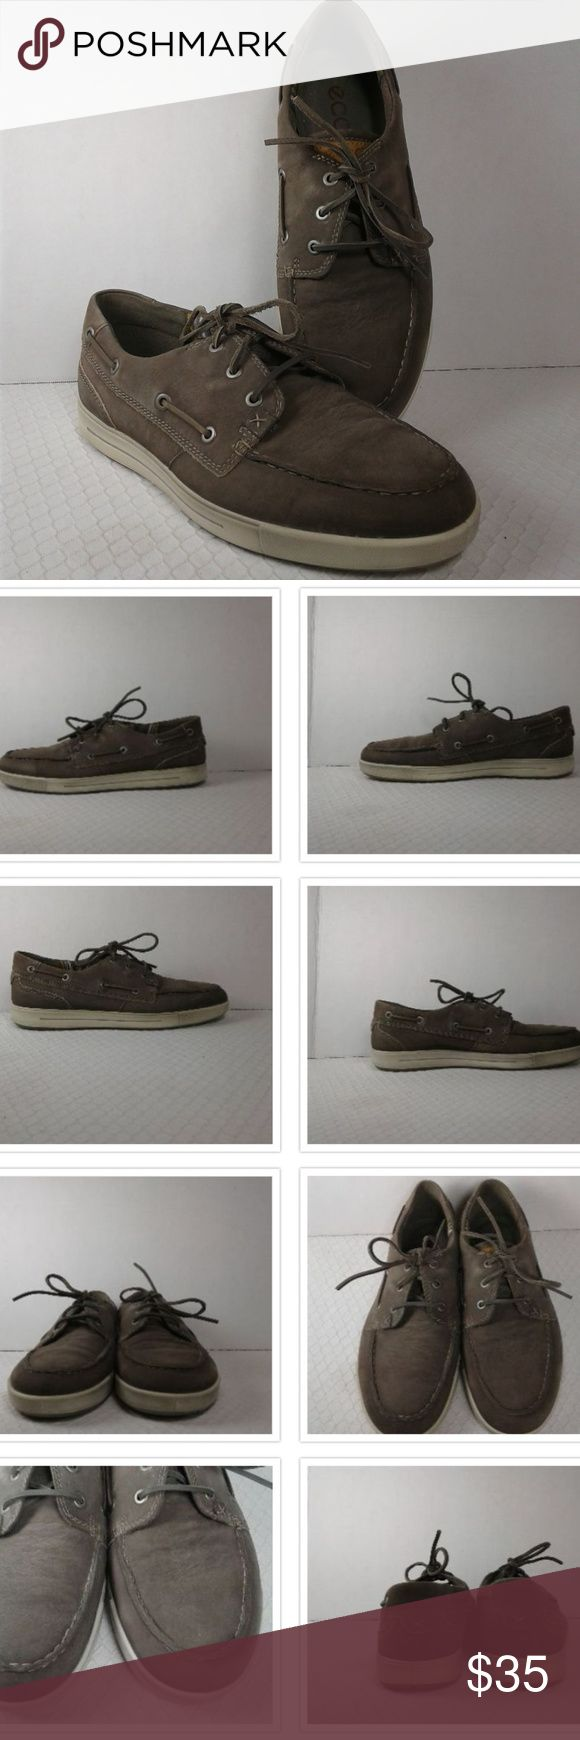 """ECCO  Men's Brown Leather Boat Shoes Nice looking pair of men's brown leather boat shoes that are in good condition with only gentle wear. Stated size is 42. Measures 11.5"""" from heel to toe, 3.25"""" wide and have a 1"""" heel. Ecco Shoes"""